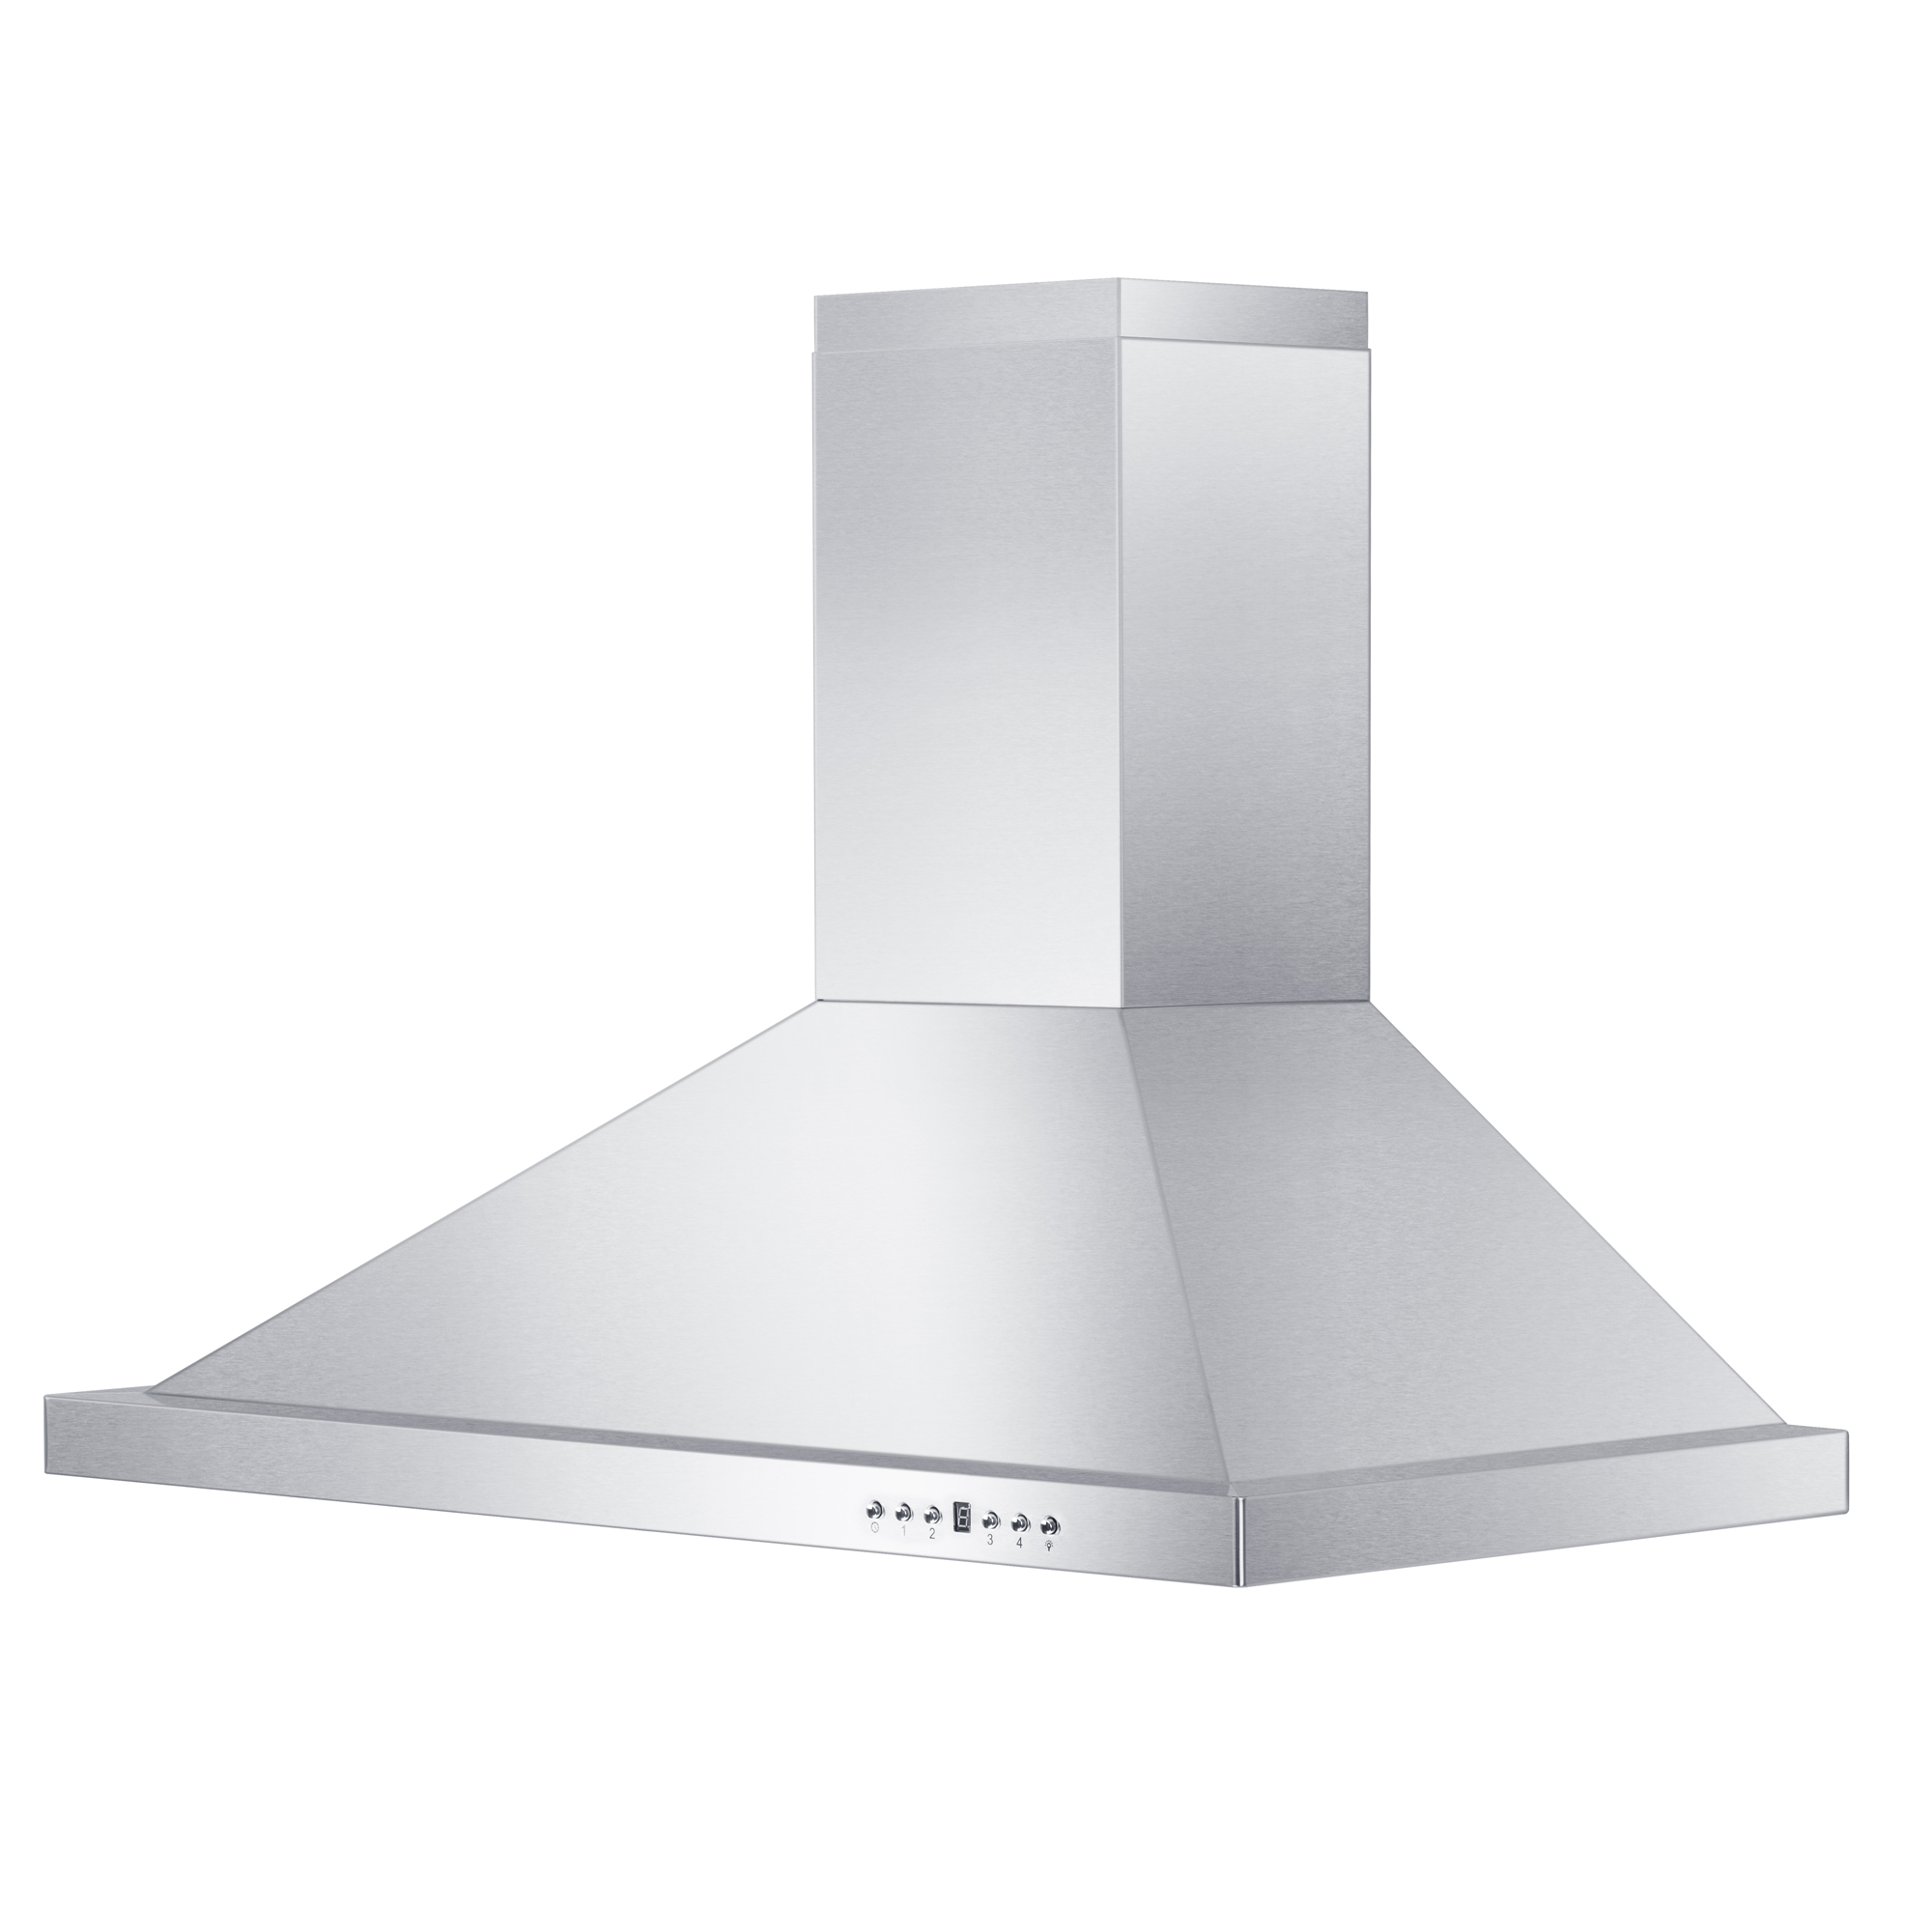 zline-stainless-steel-wall-mounted-range-hood-KB-new-main.jpg